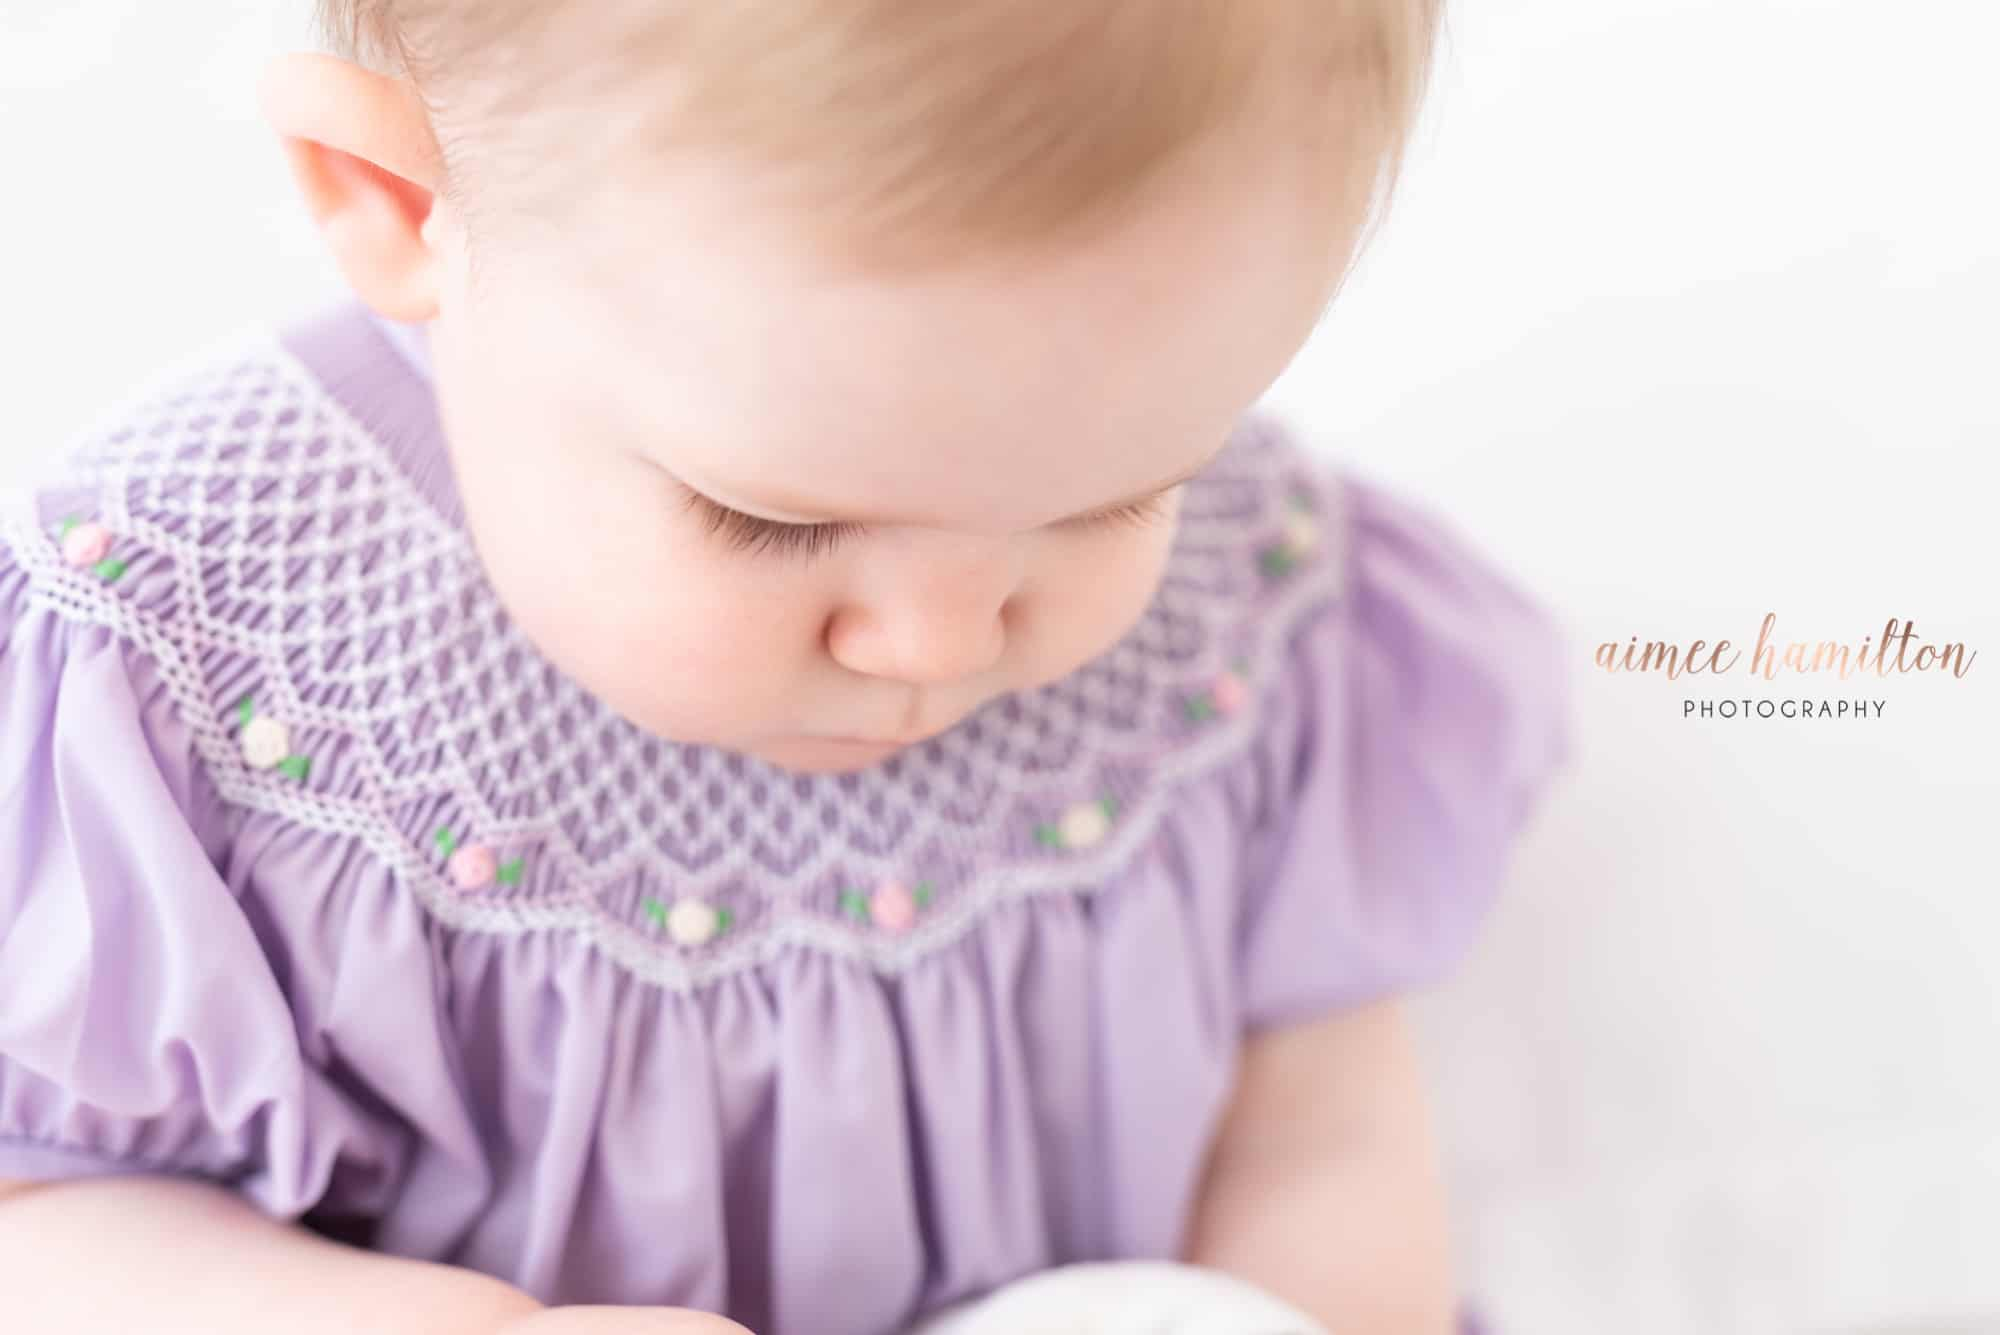 Close up of baby girl in smocked dress